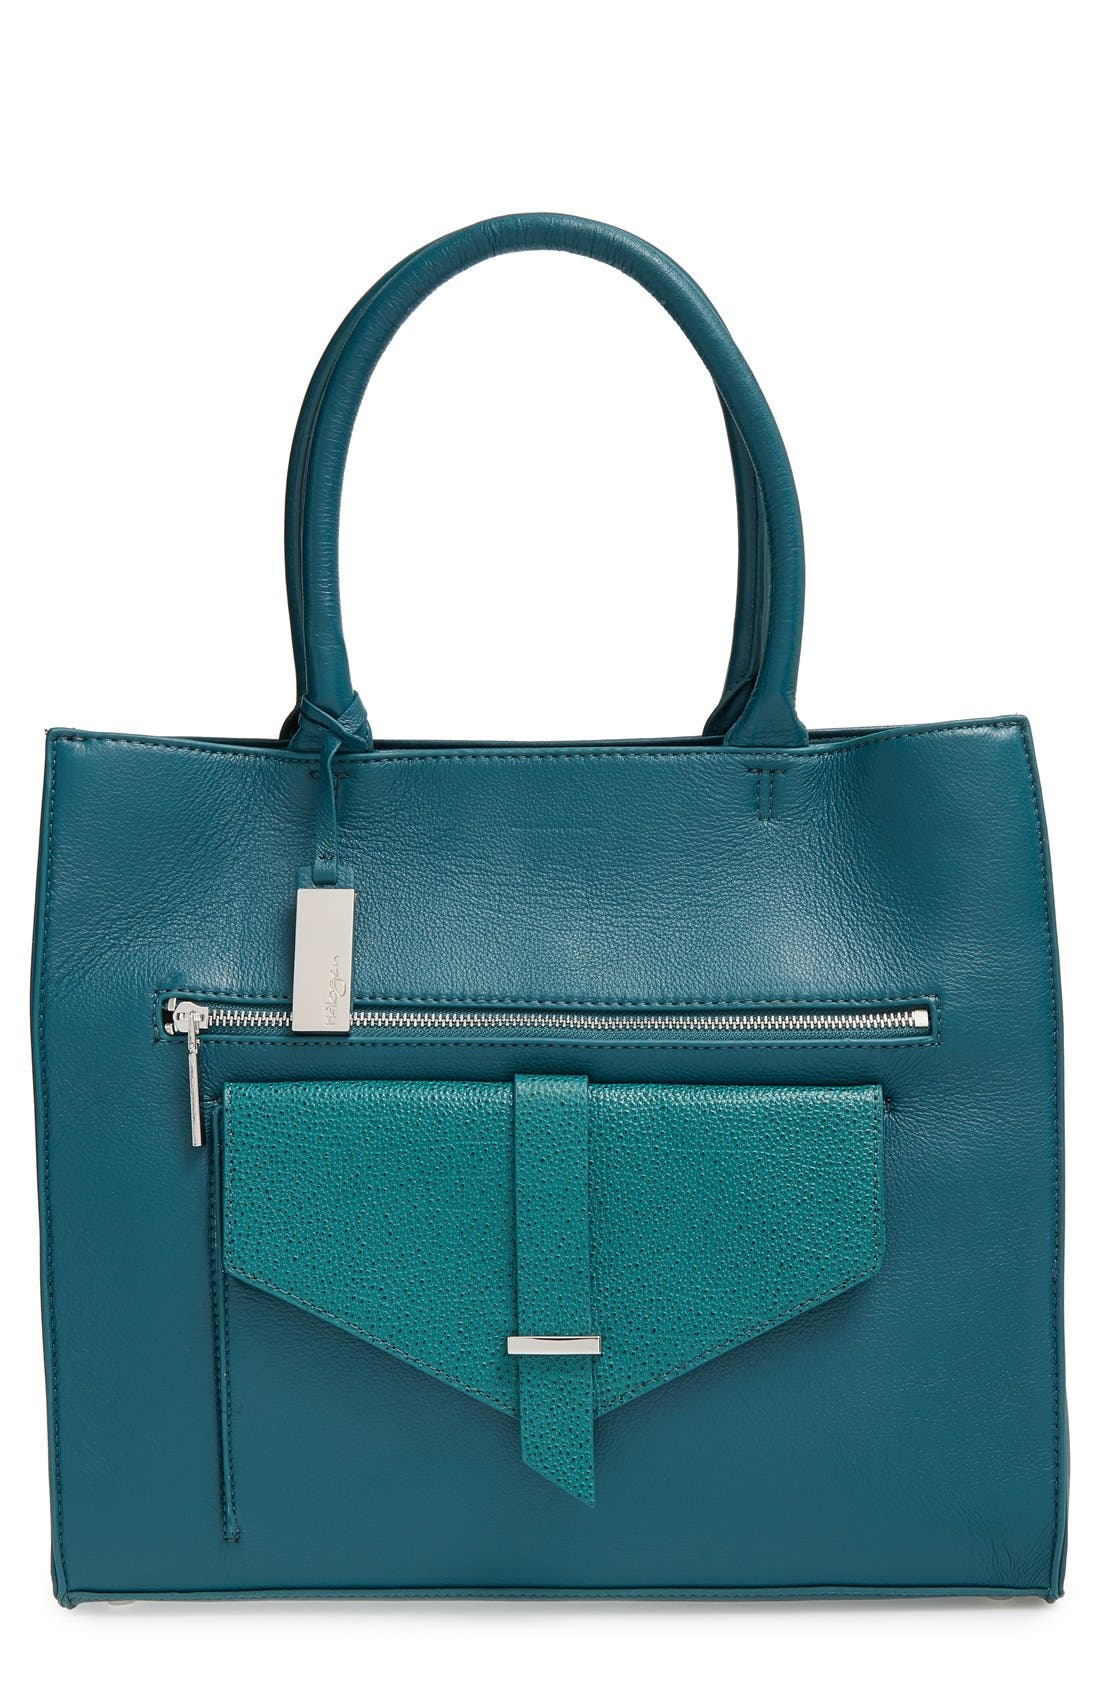 Alternate Image 1 Selected - Halogen® 'Belltown' Leather Tote